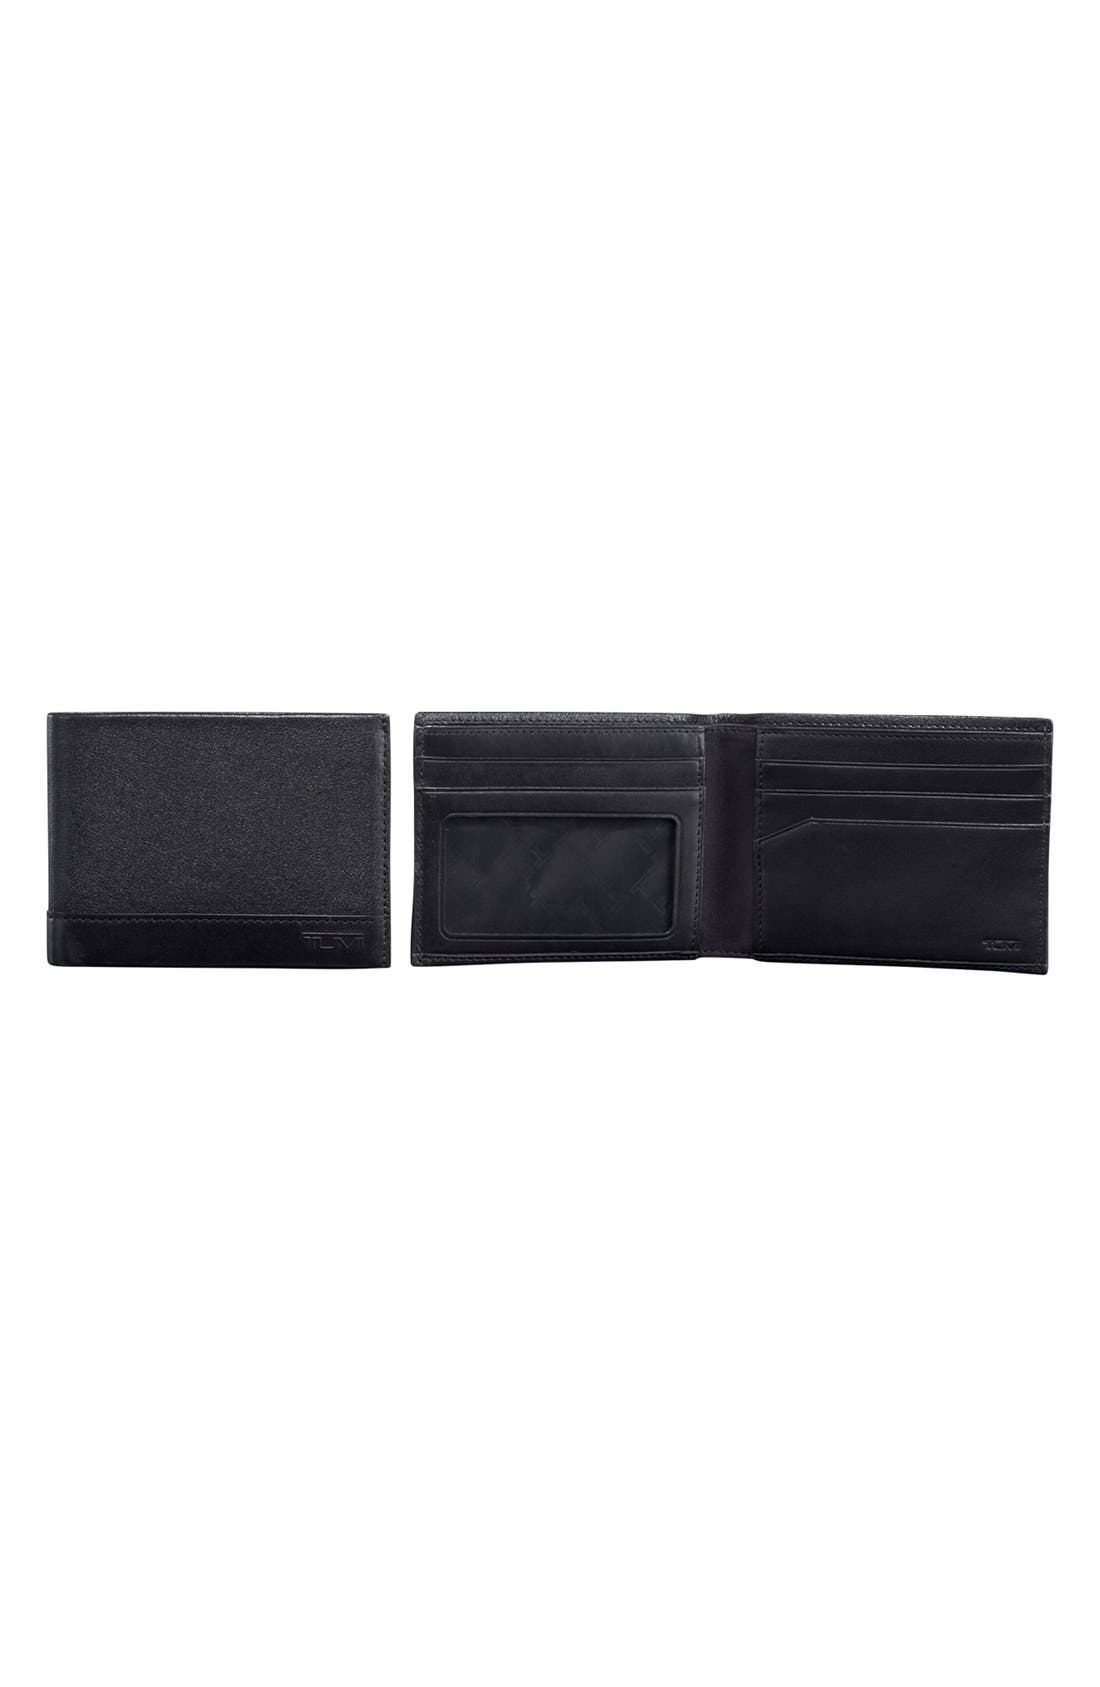 'Rivington' Leather Wallet,                             Main thumbnail 1, color,                             001